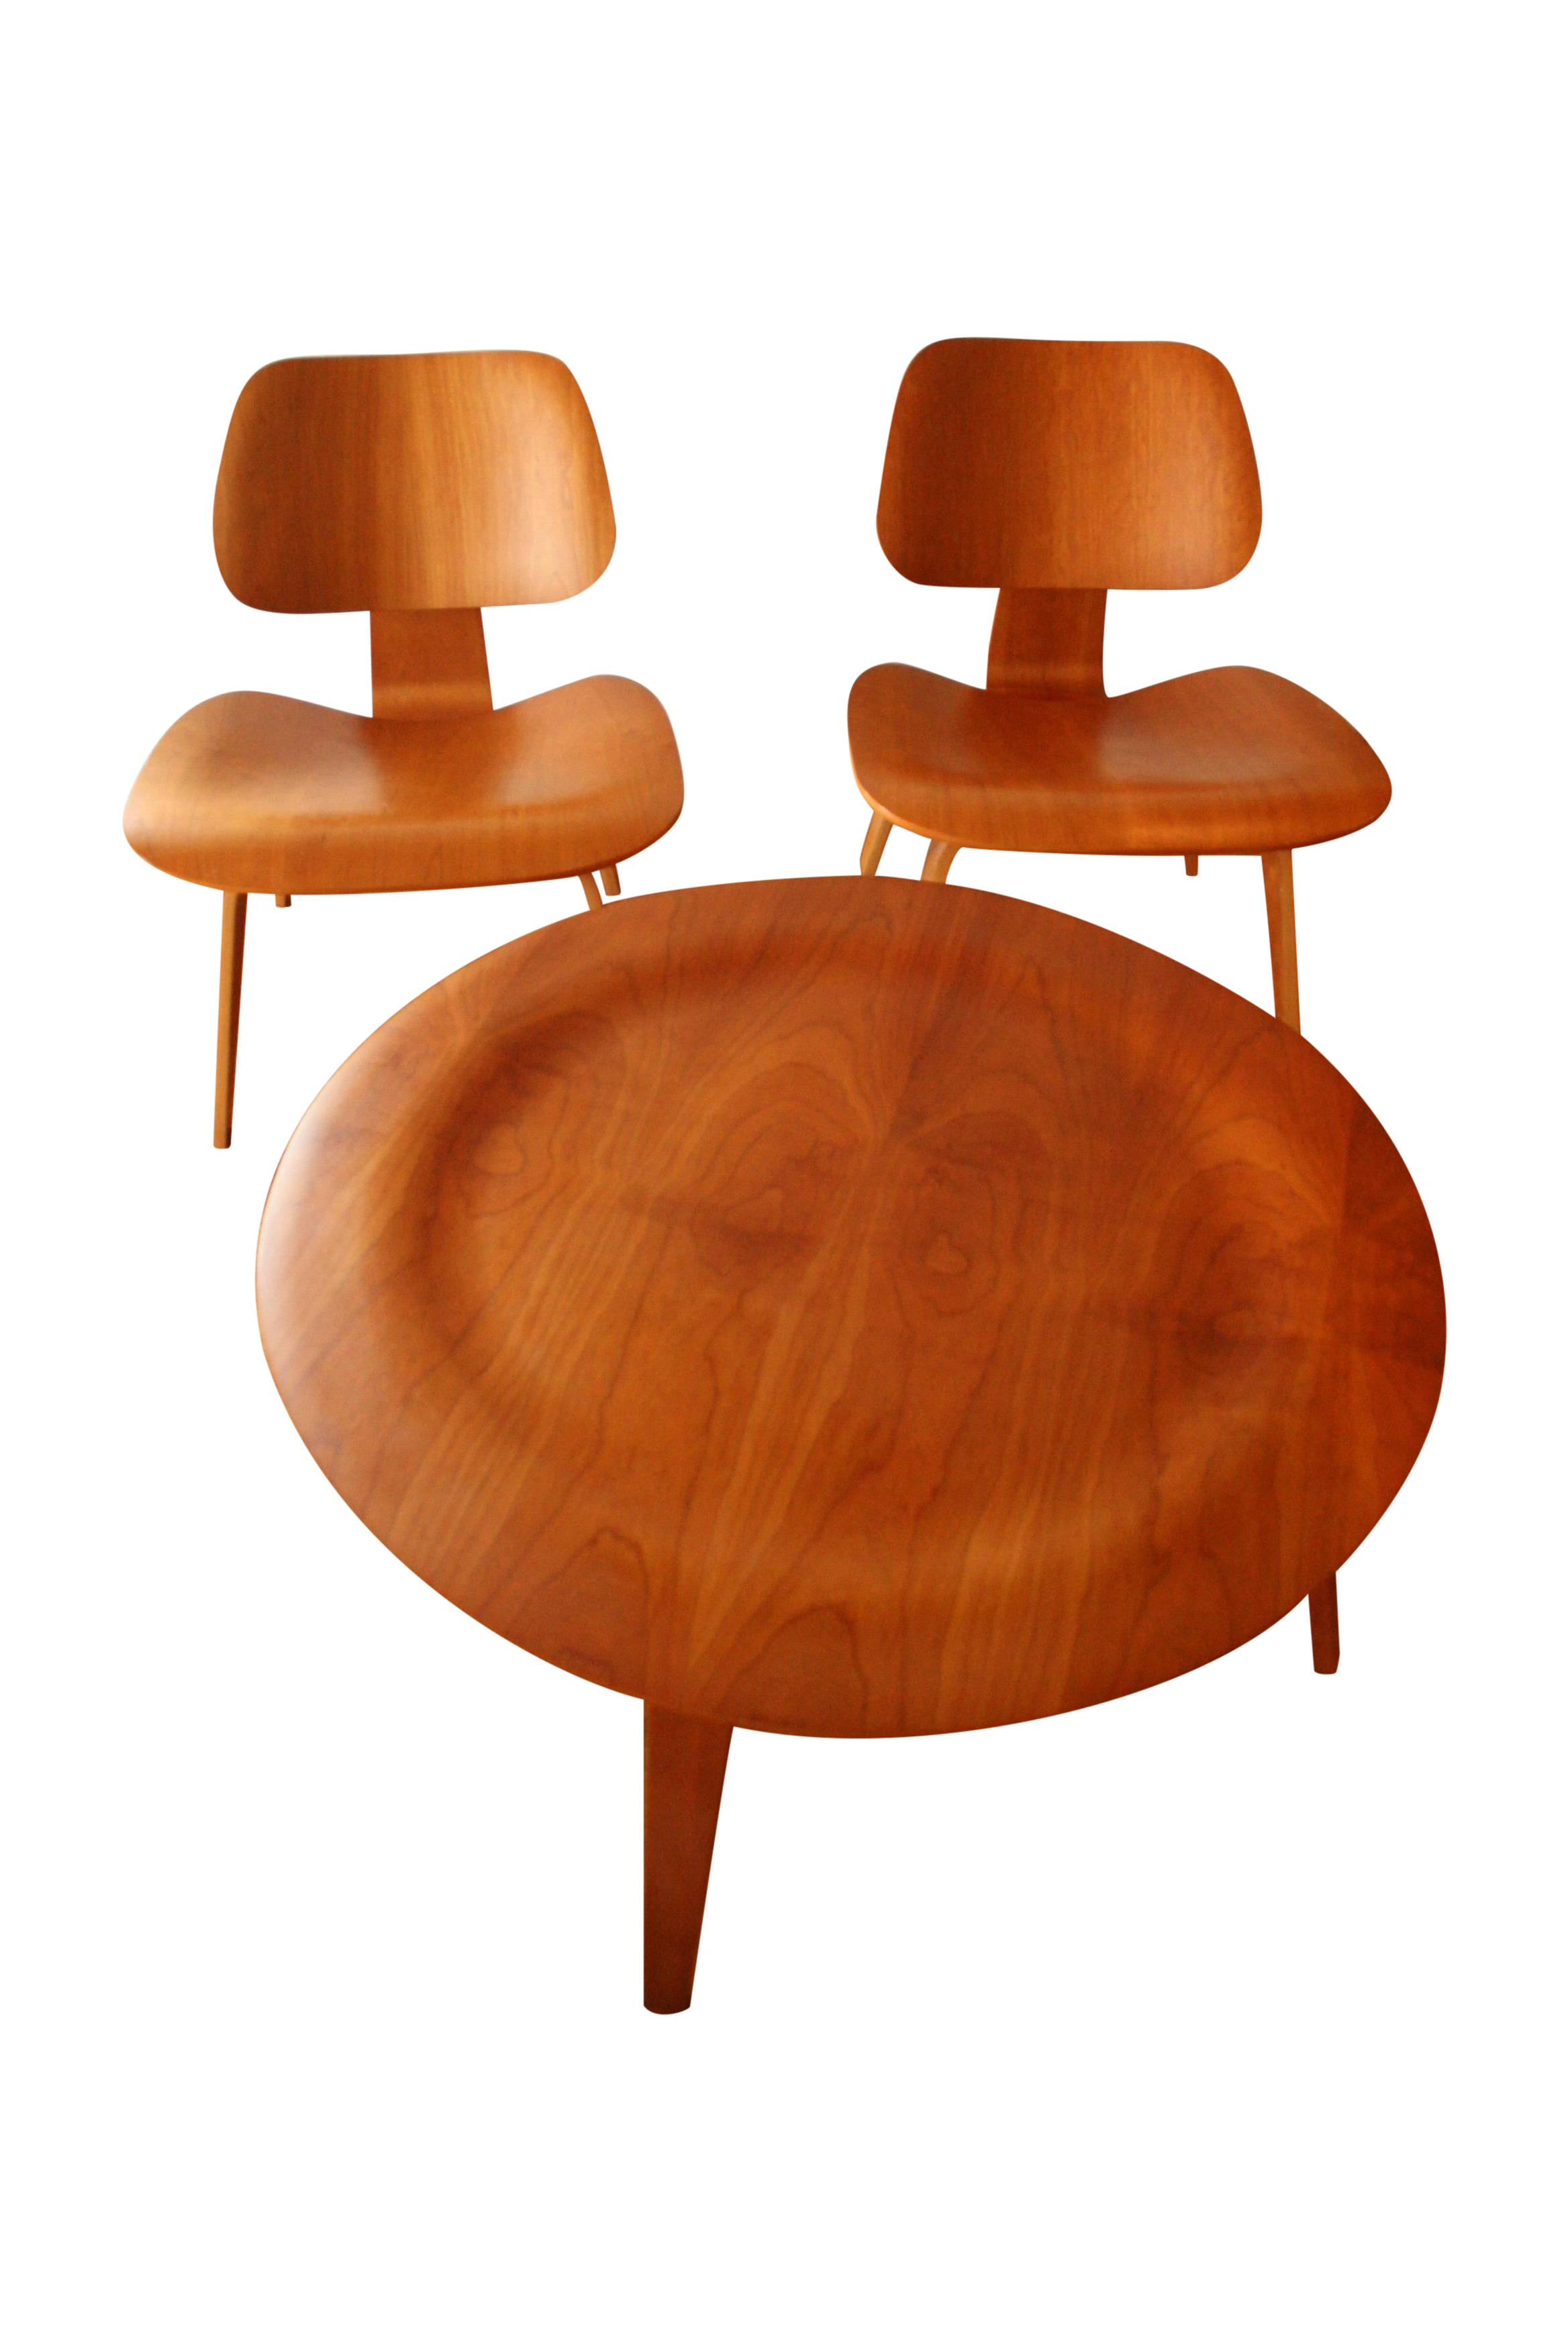 Eames Molded Plywood Table & 2 Lounge Chairs